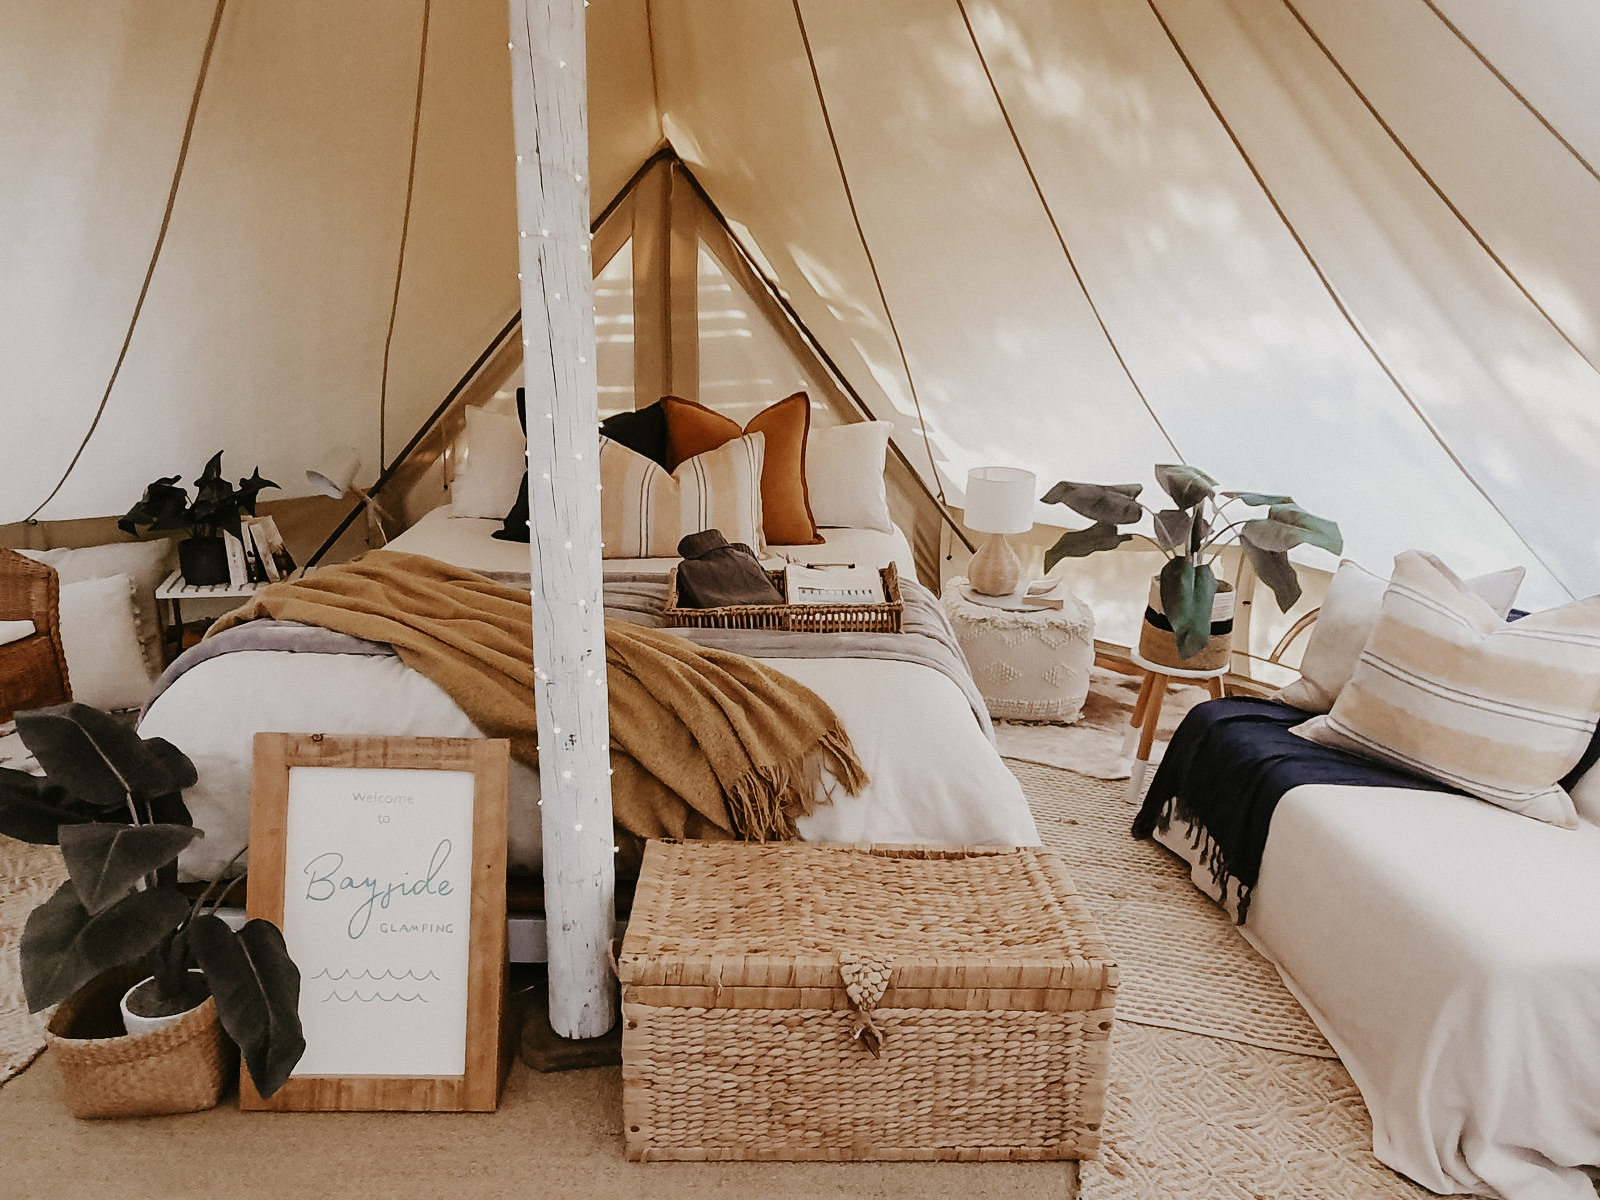 Bayside Glamping Tent